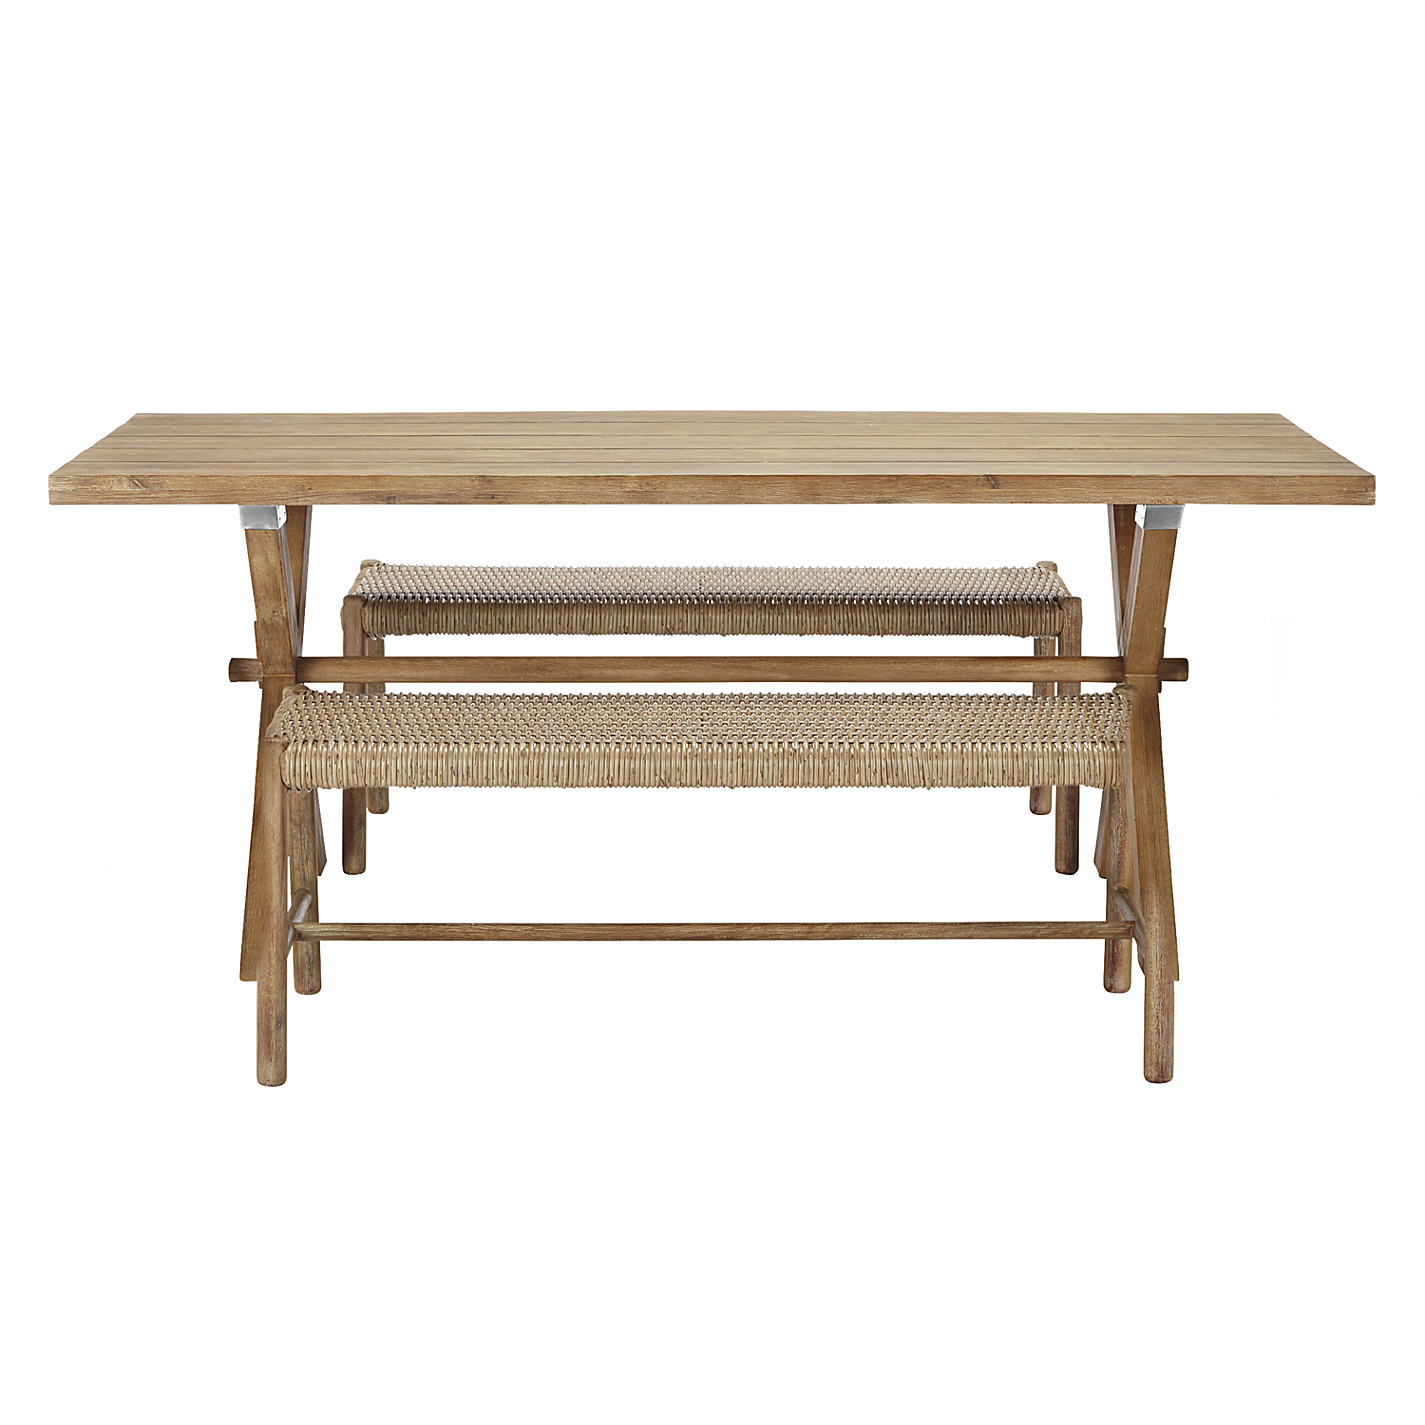 Buy John Lewis Croft Collection Islay 6 Seater Dining Table FSC